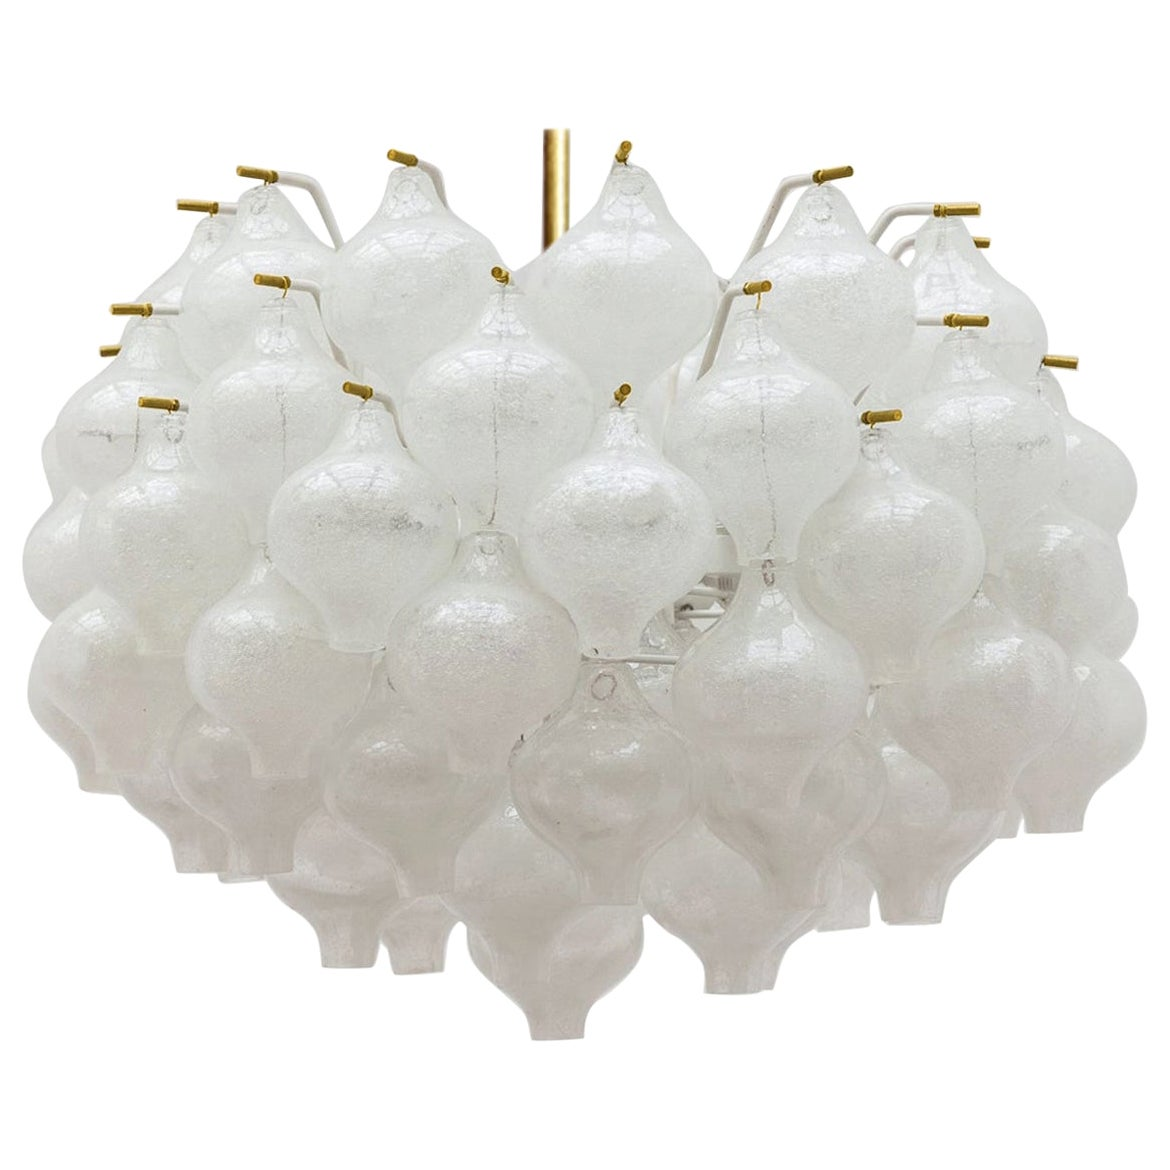 Exceptional Large Kalmar 'Tulipan' Light Fixtures, 1960s